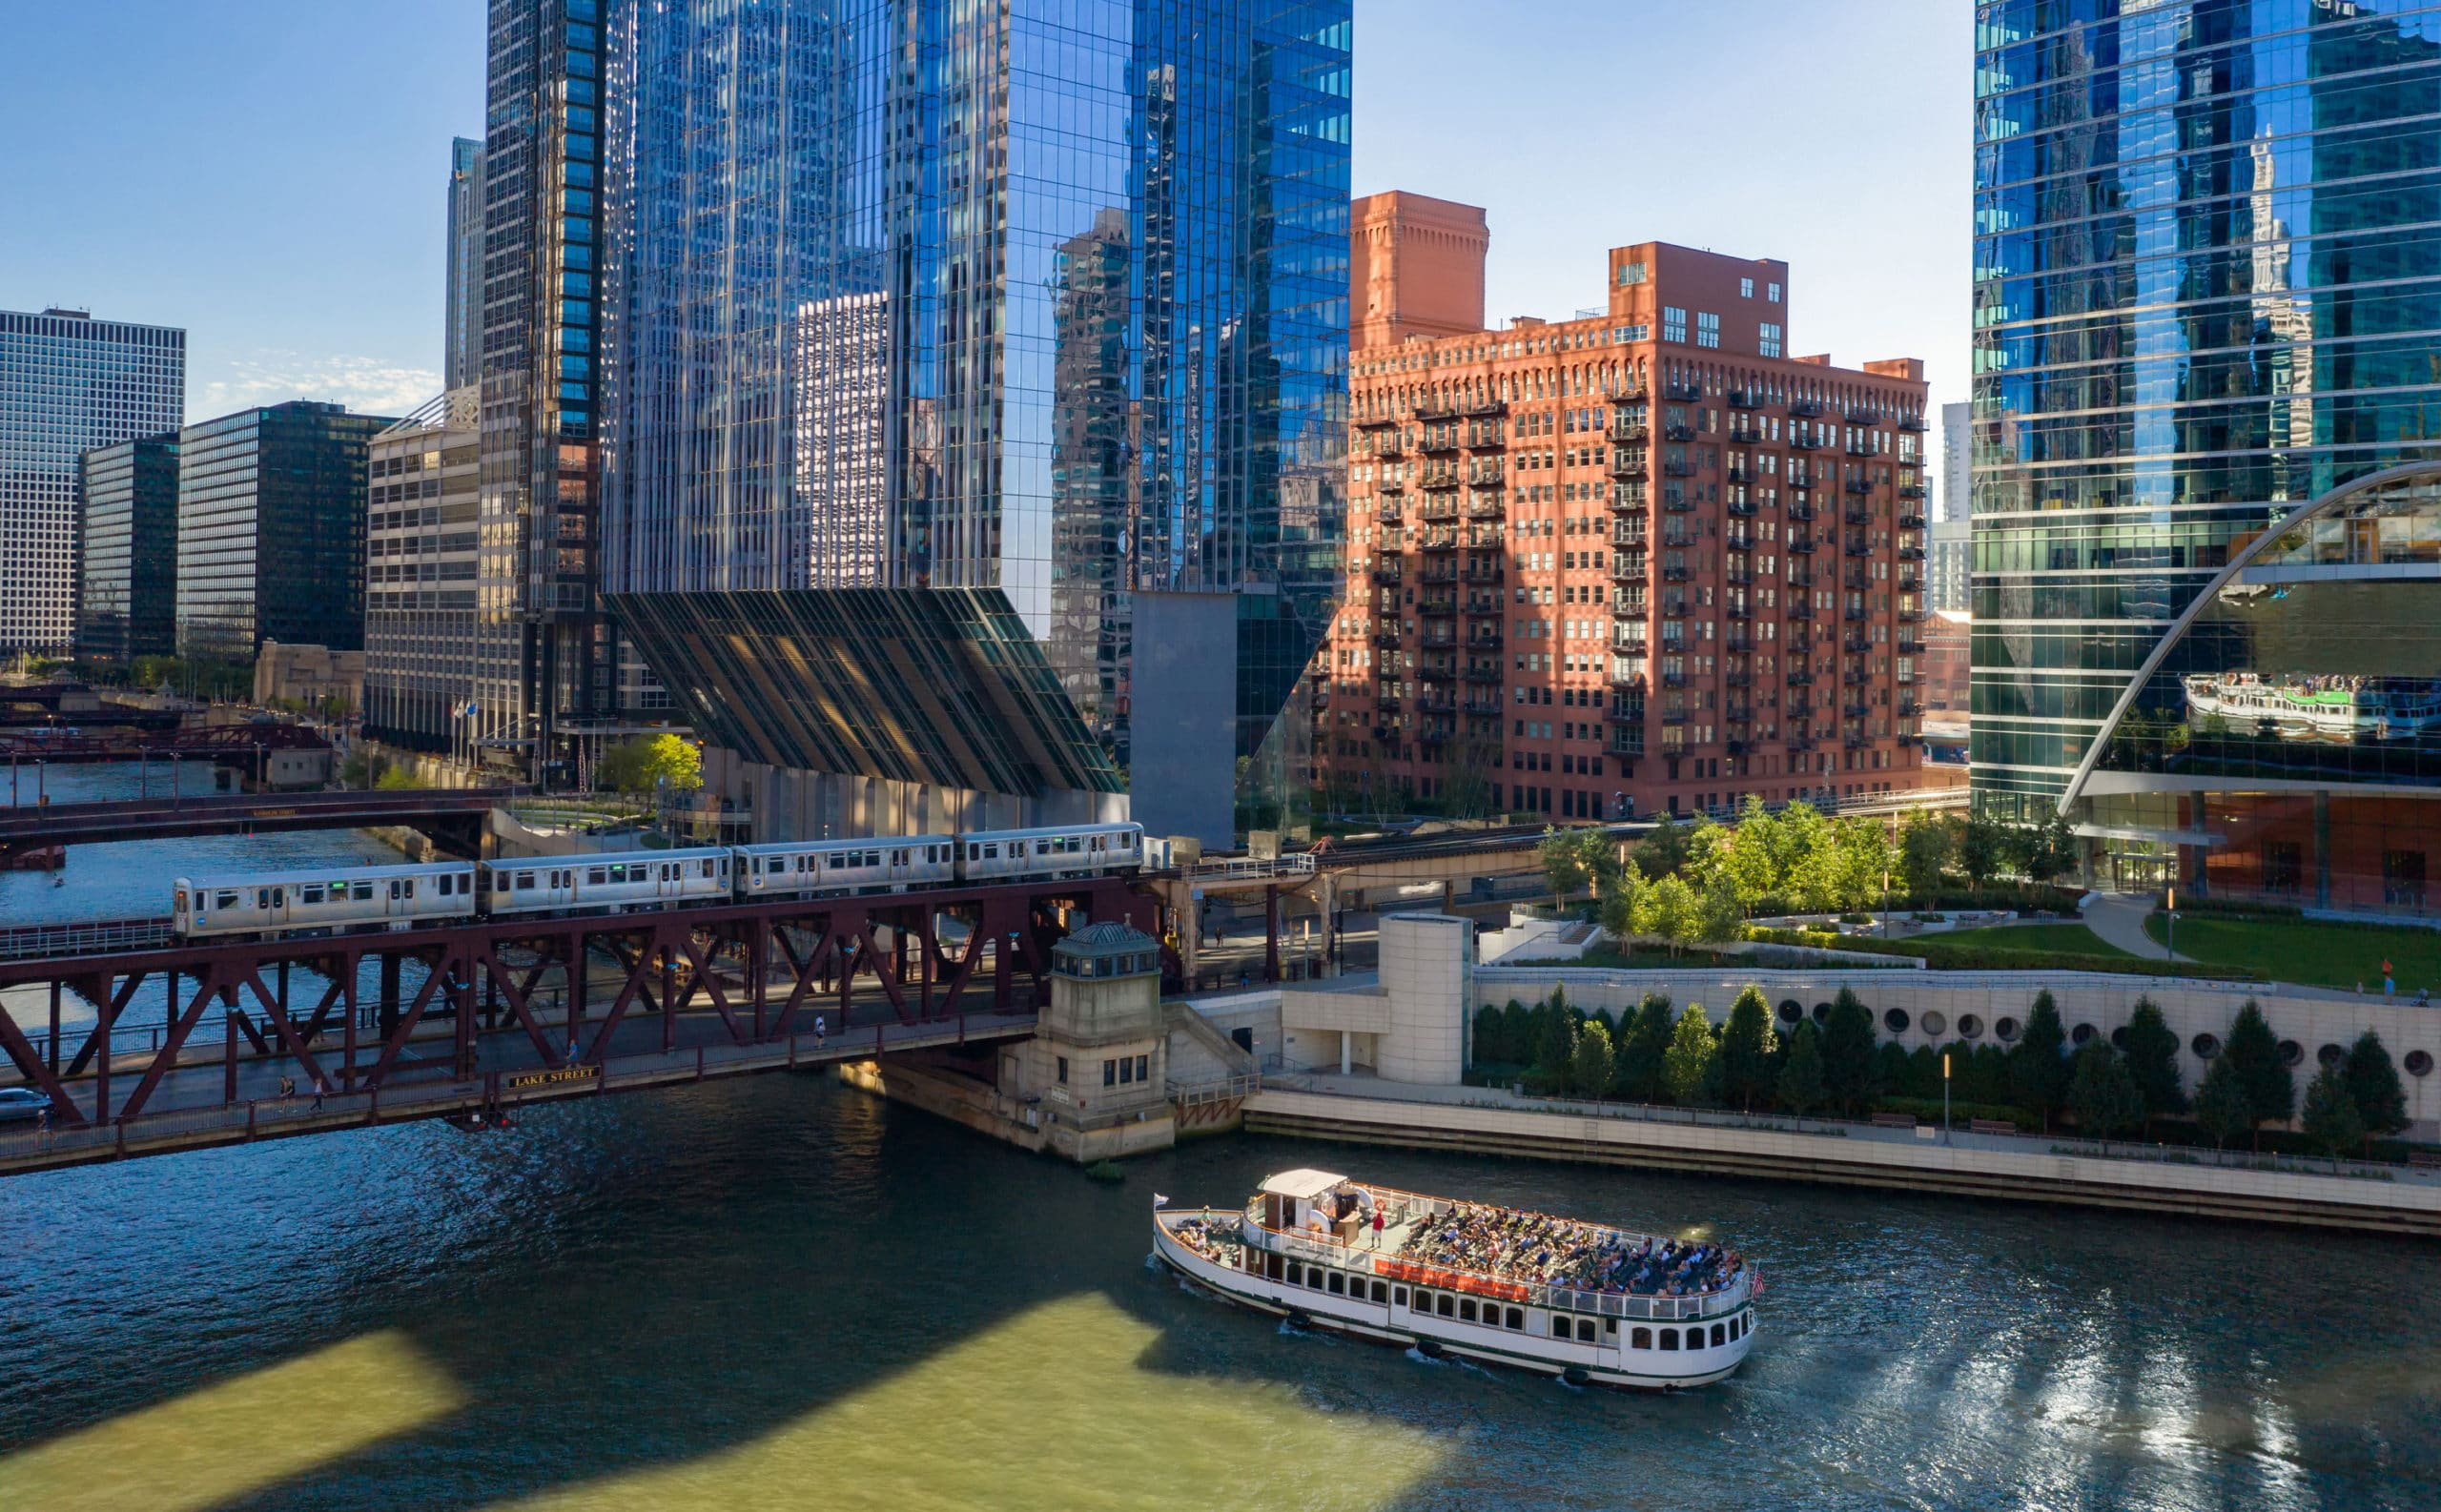 Exterior view of Chicago river with a bridge overpass into the city.